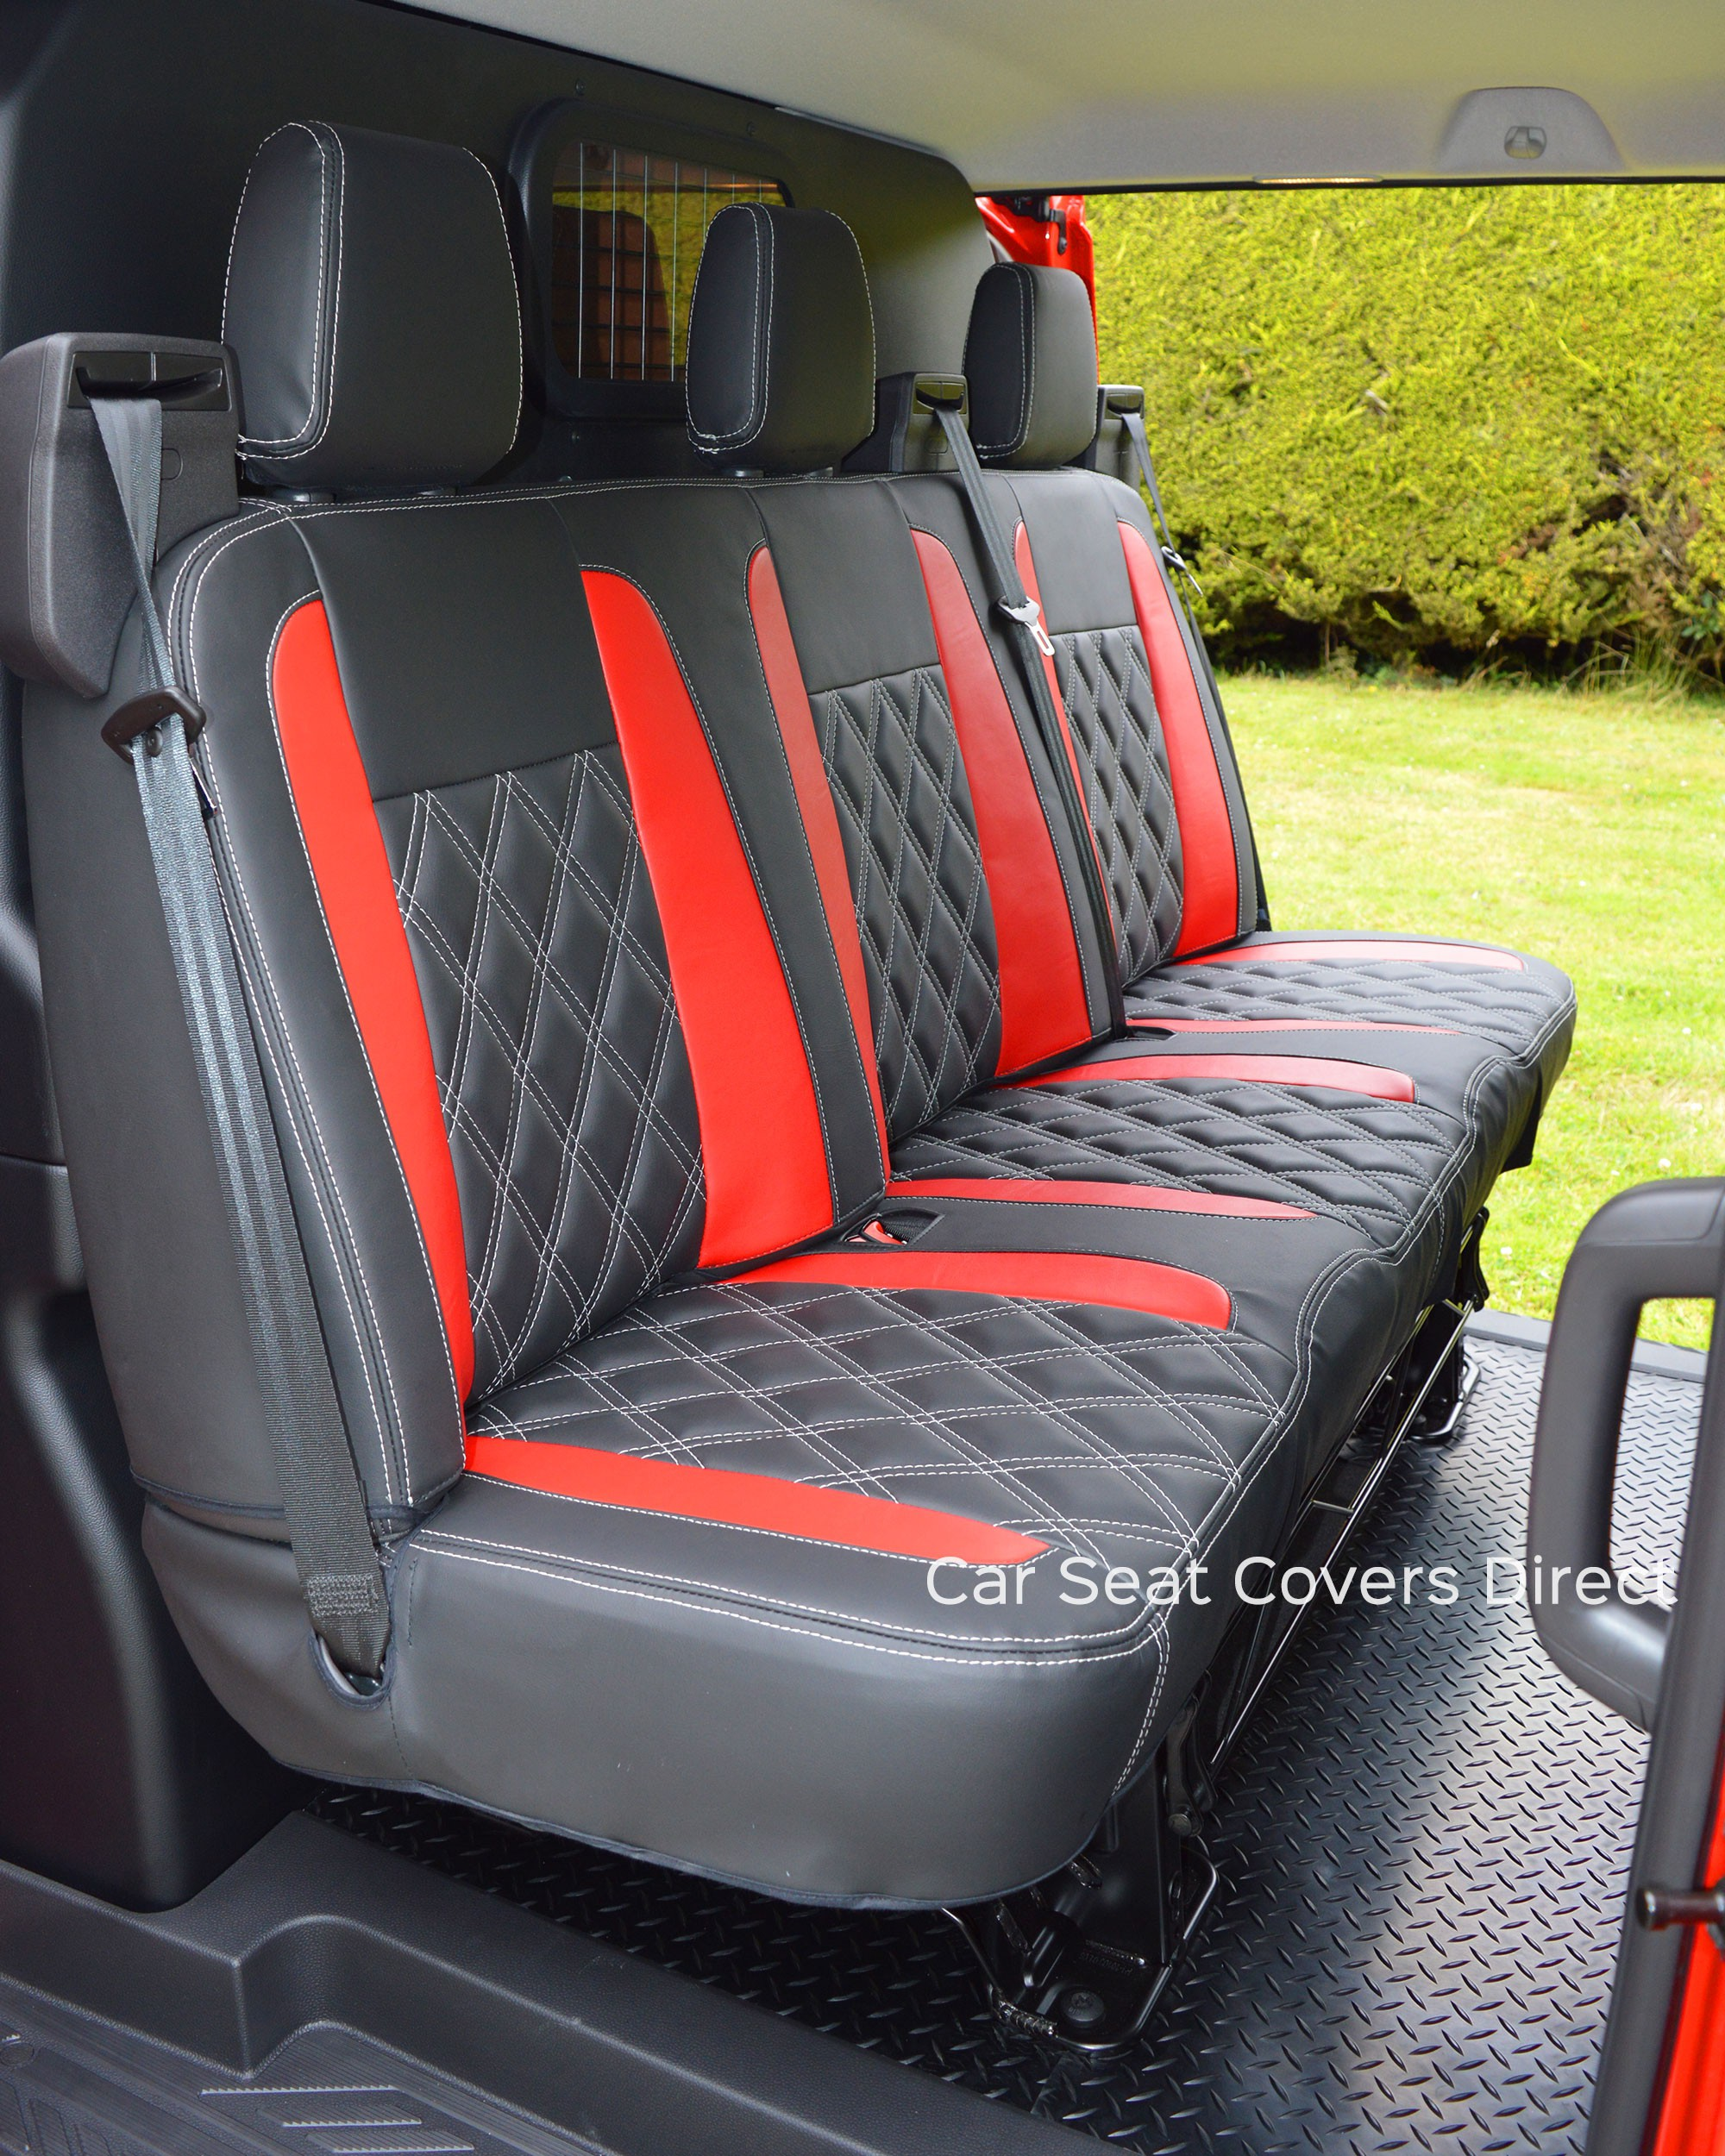 Ford Transit Custom Sport Crewcab Tailored Seat Covers Car Seat Covers Direct Tailored To Your